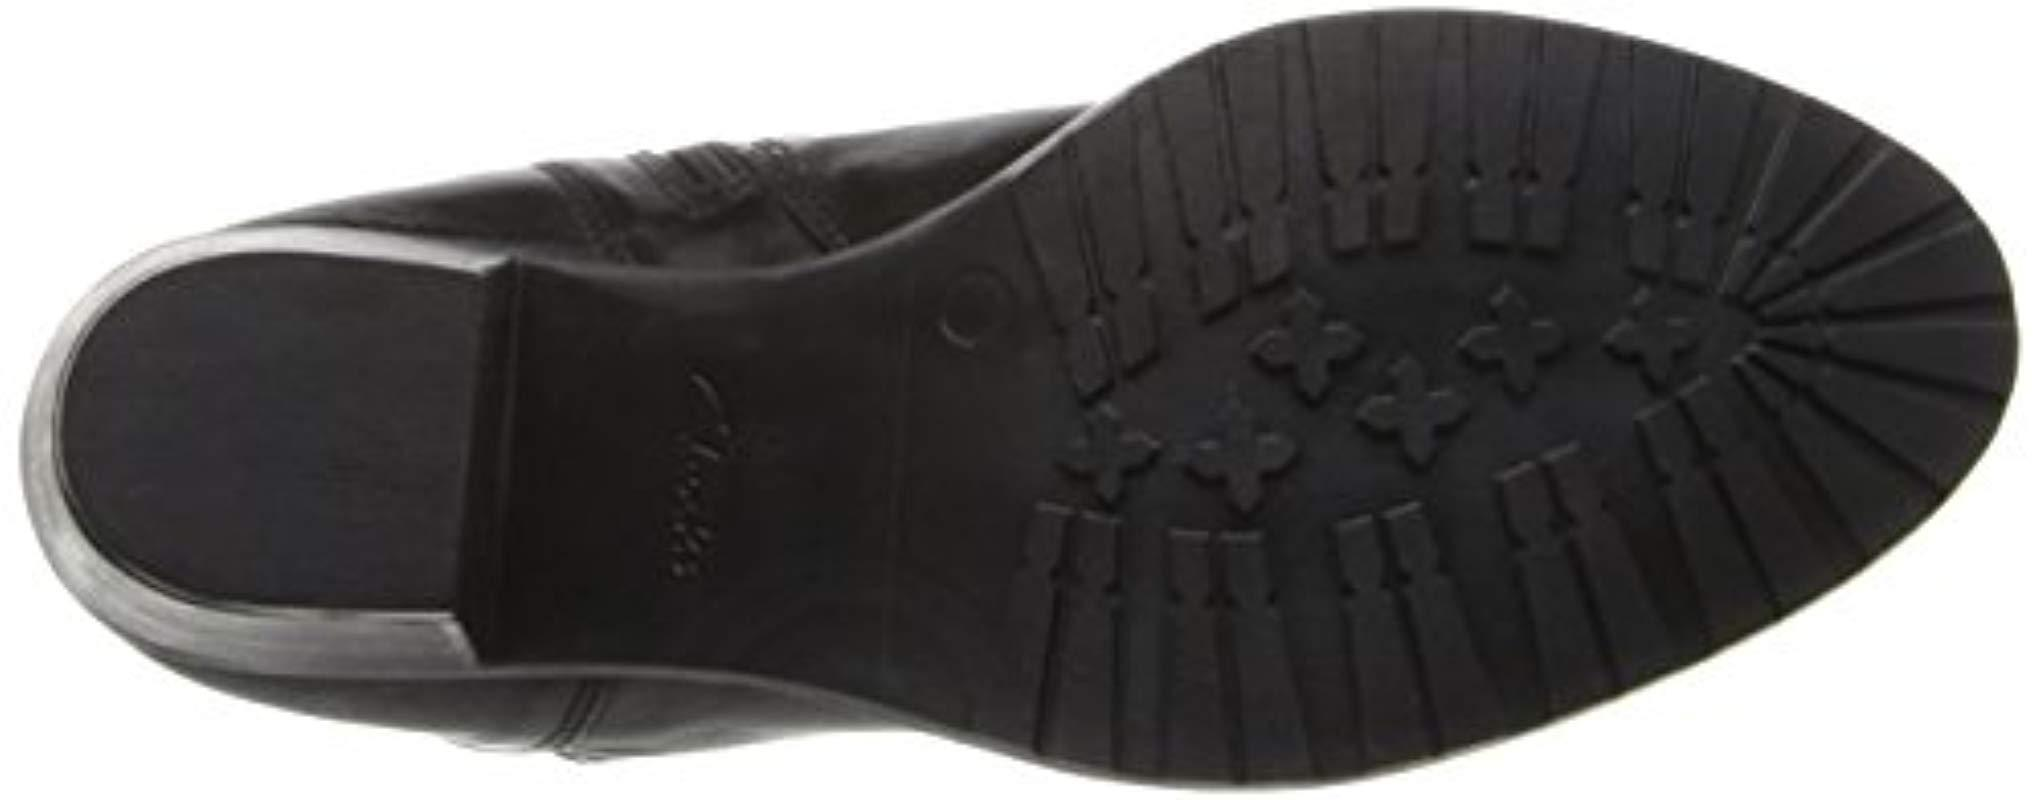 Clarks Synthetic Maymie Skye Boot in Black Leather (Black)